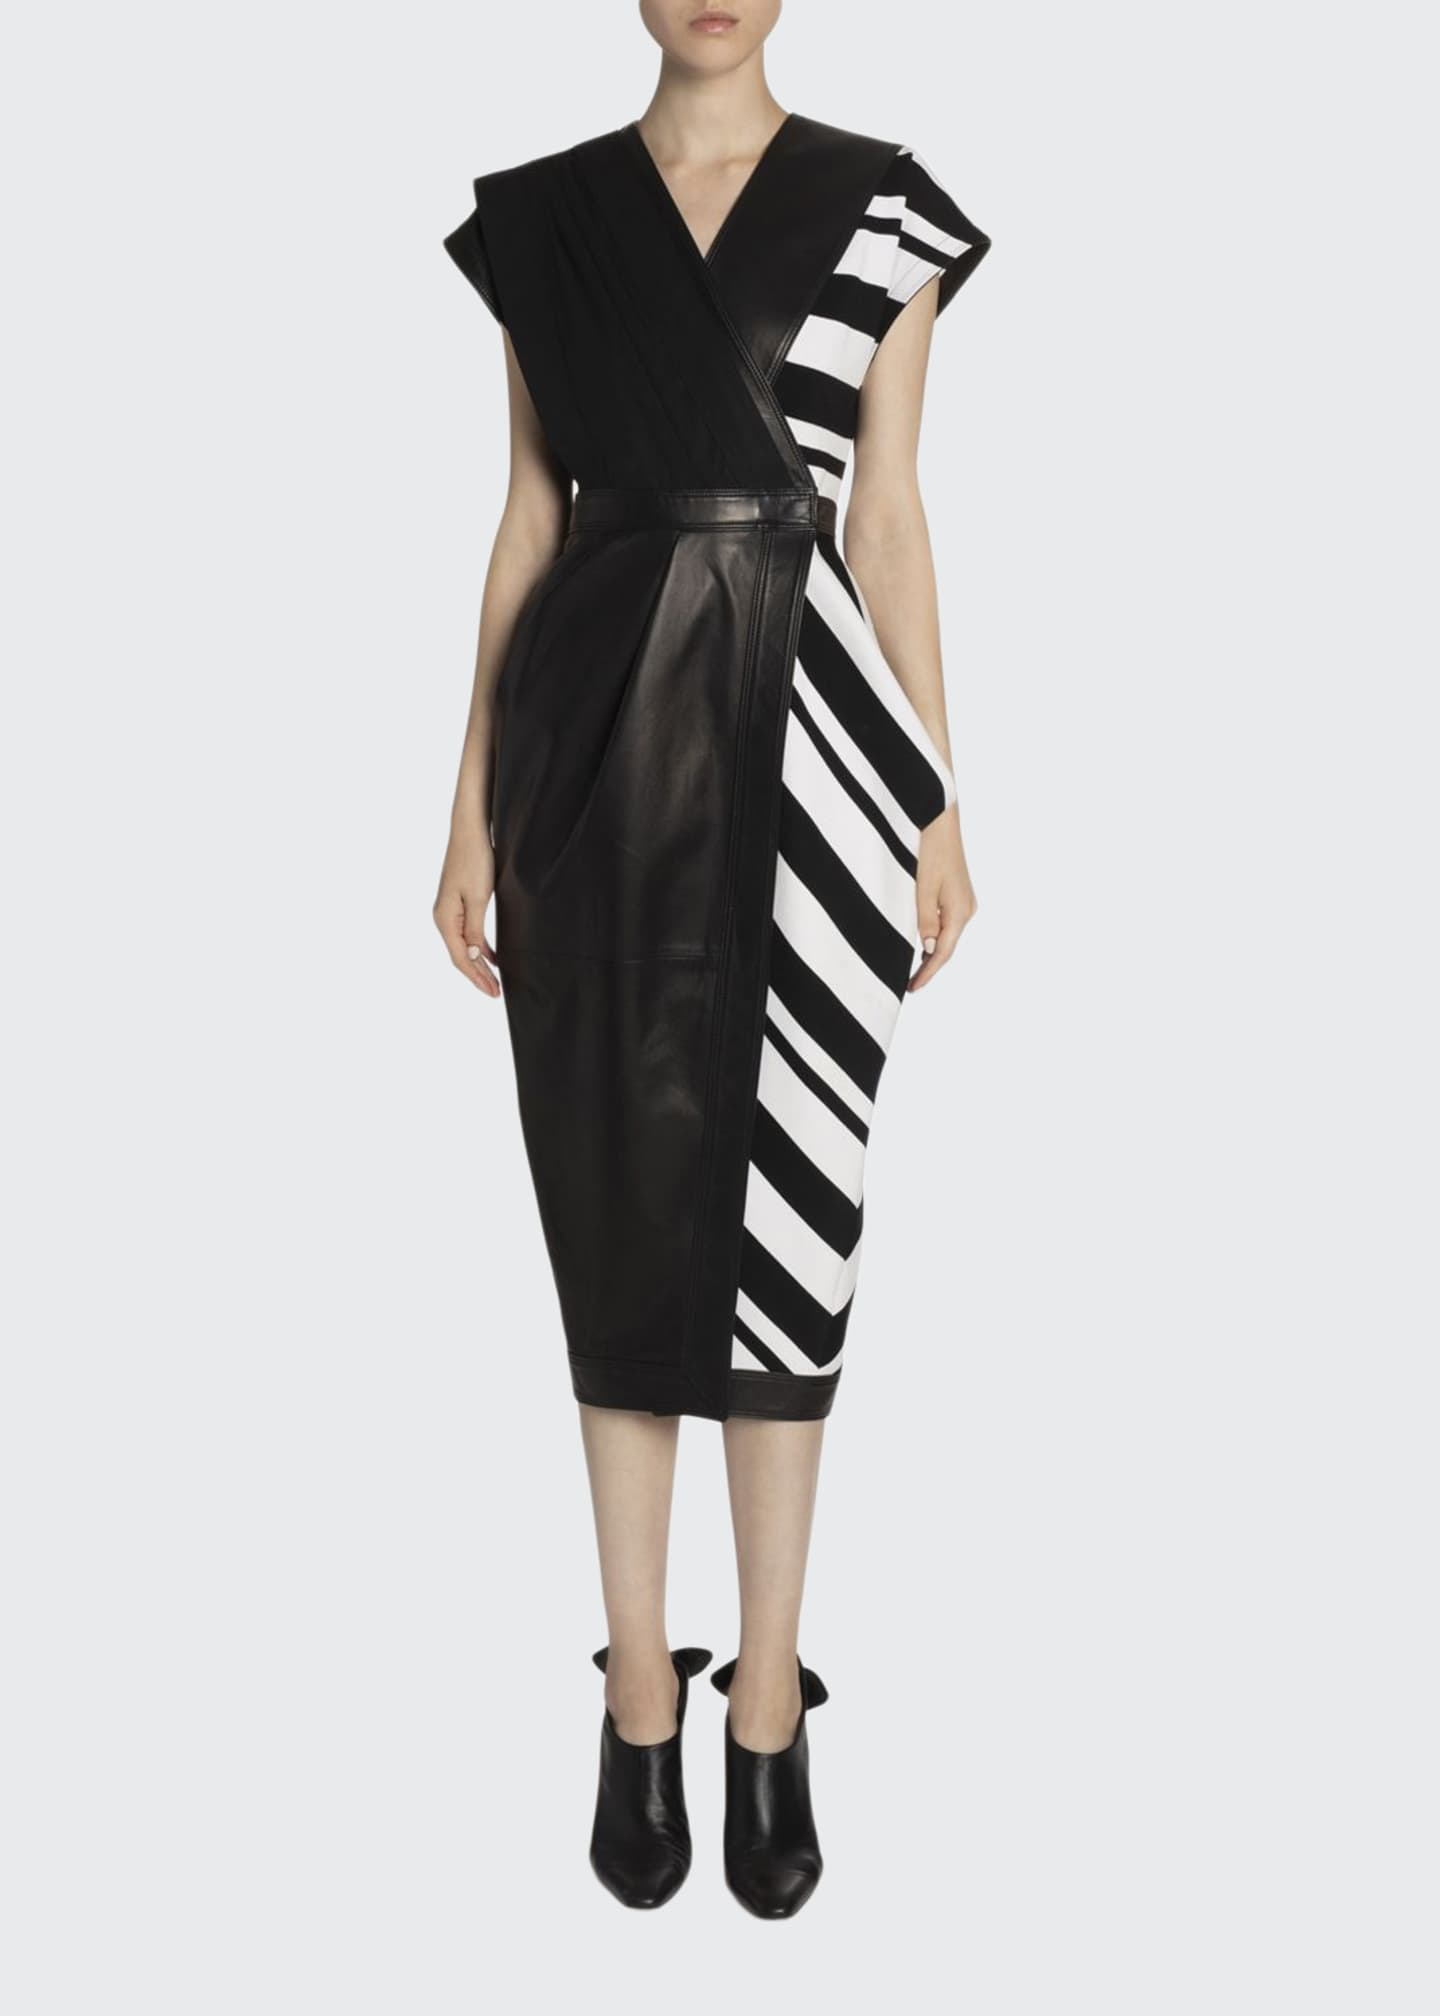 Proenza Schouler Cap-Sleeve Leather & Knit Wrap Dress